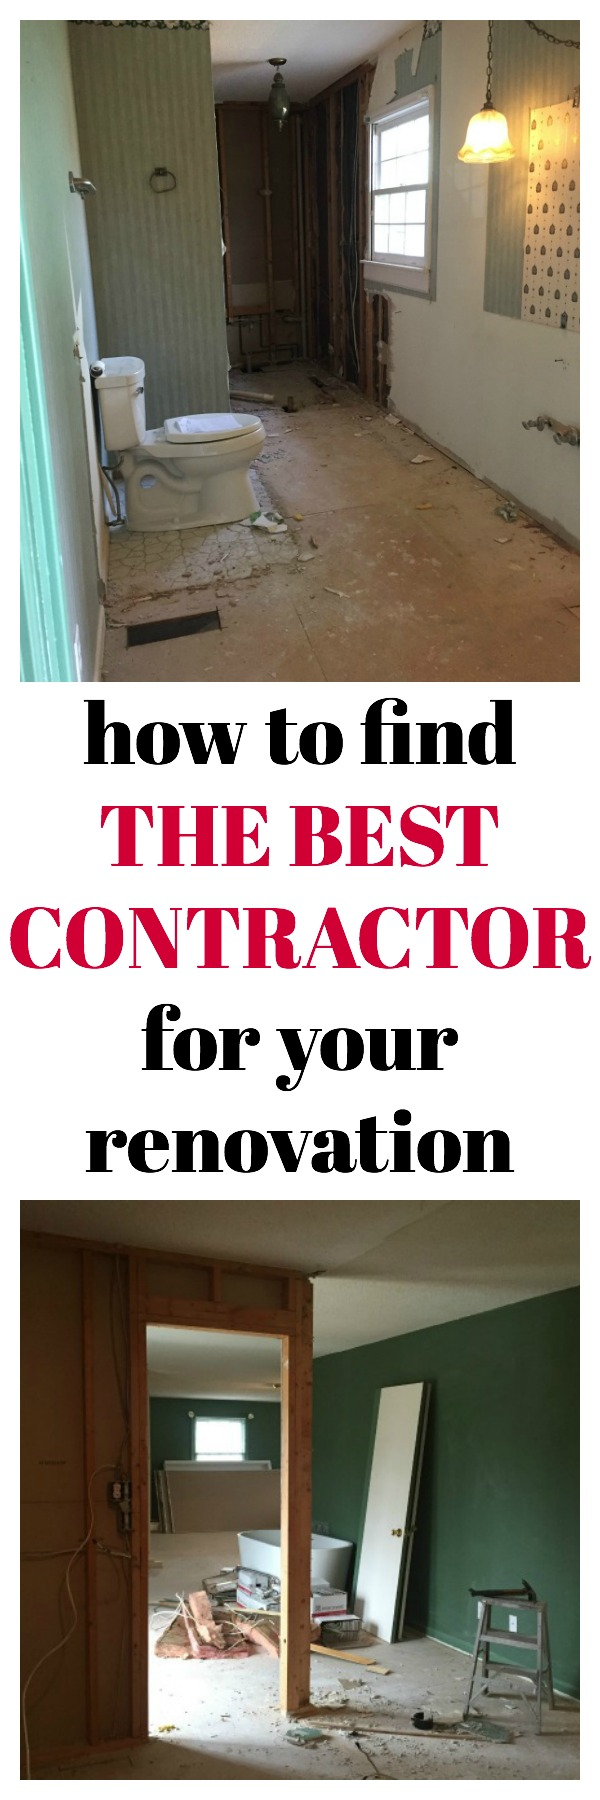 Very valuable information - How to Find the Best Contractor for Your Renovation - Must read tips if you are considering a home renovation or remodel!